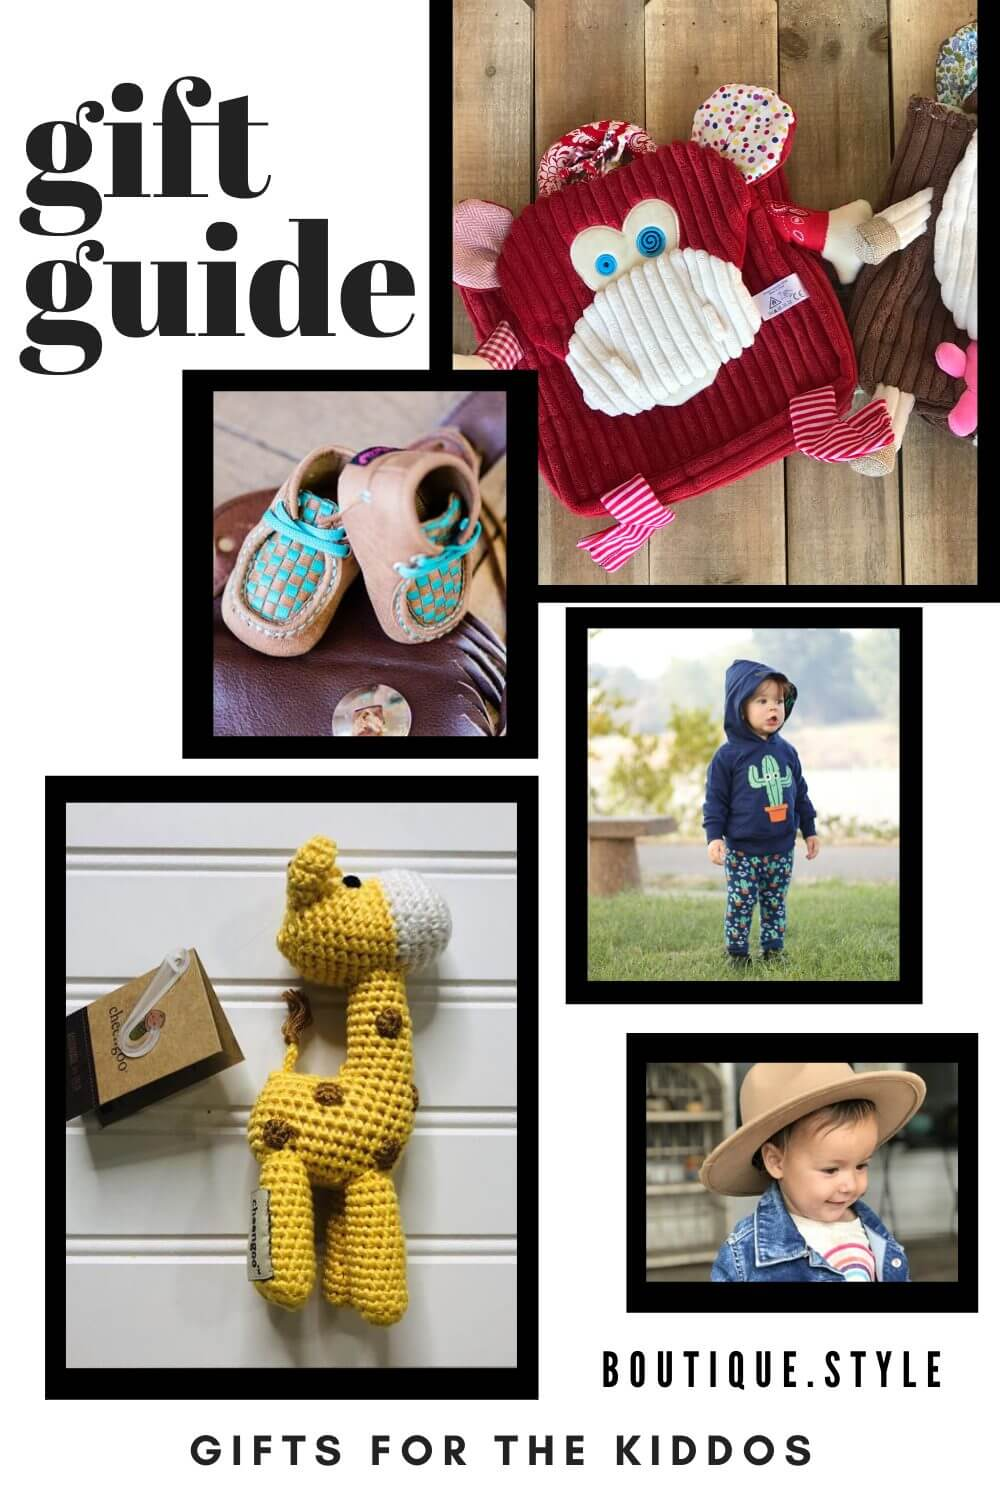 Gift Guide for The Kiddos